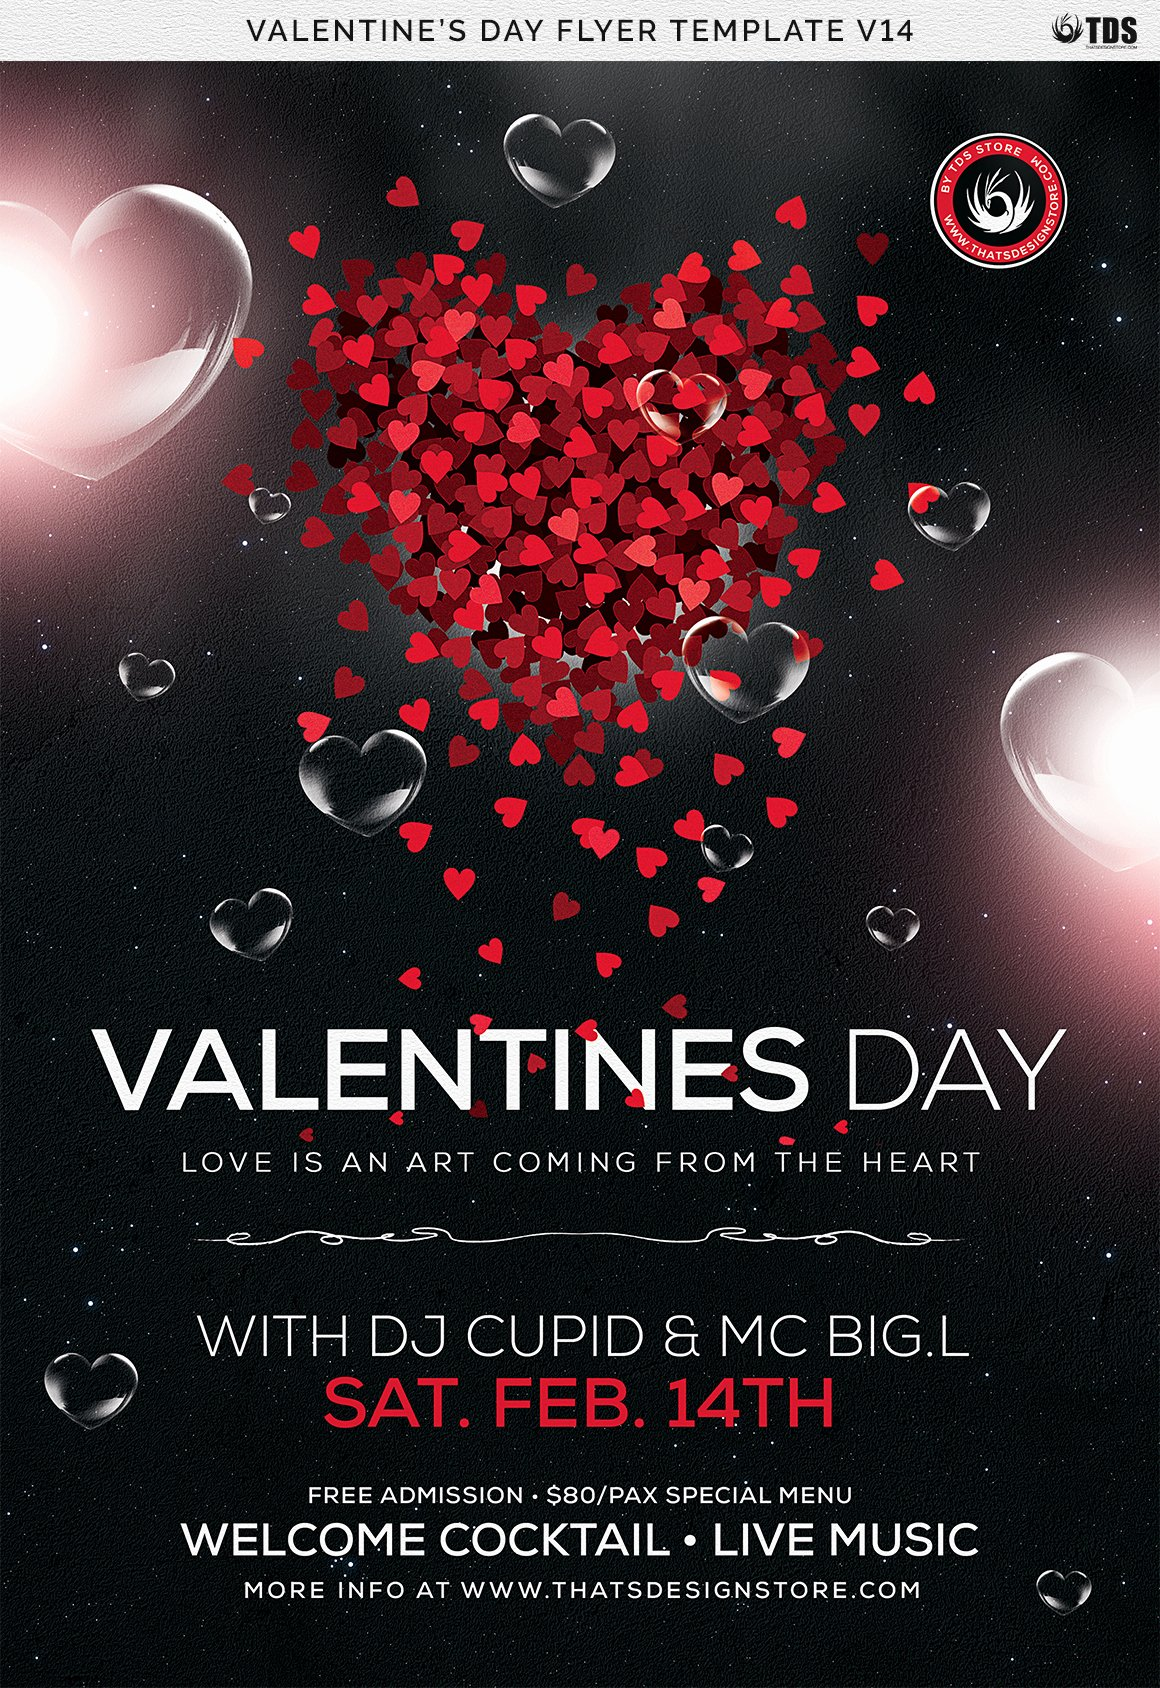 Valentines Flyer Templates Free Beautiful Valentines Day Flyer Template V14